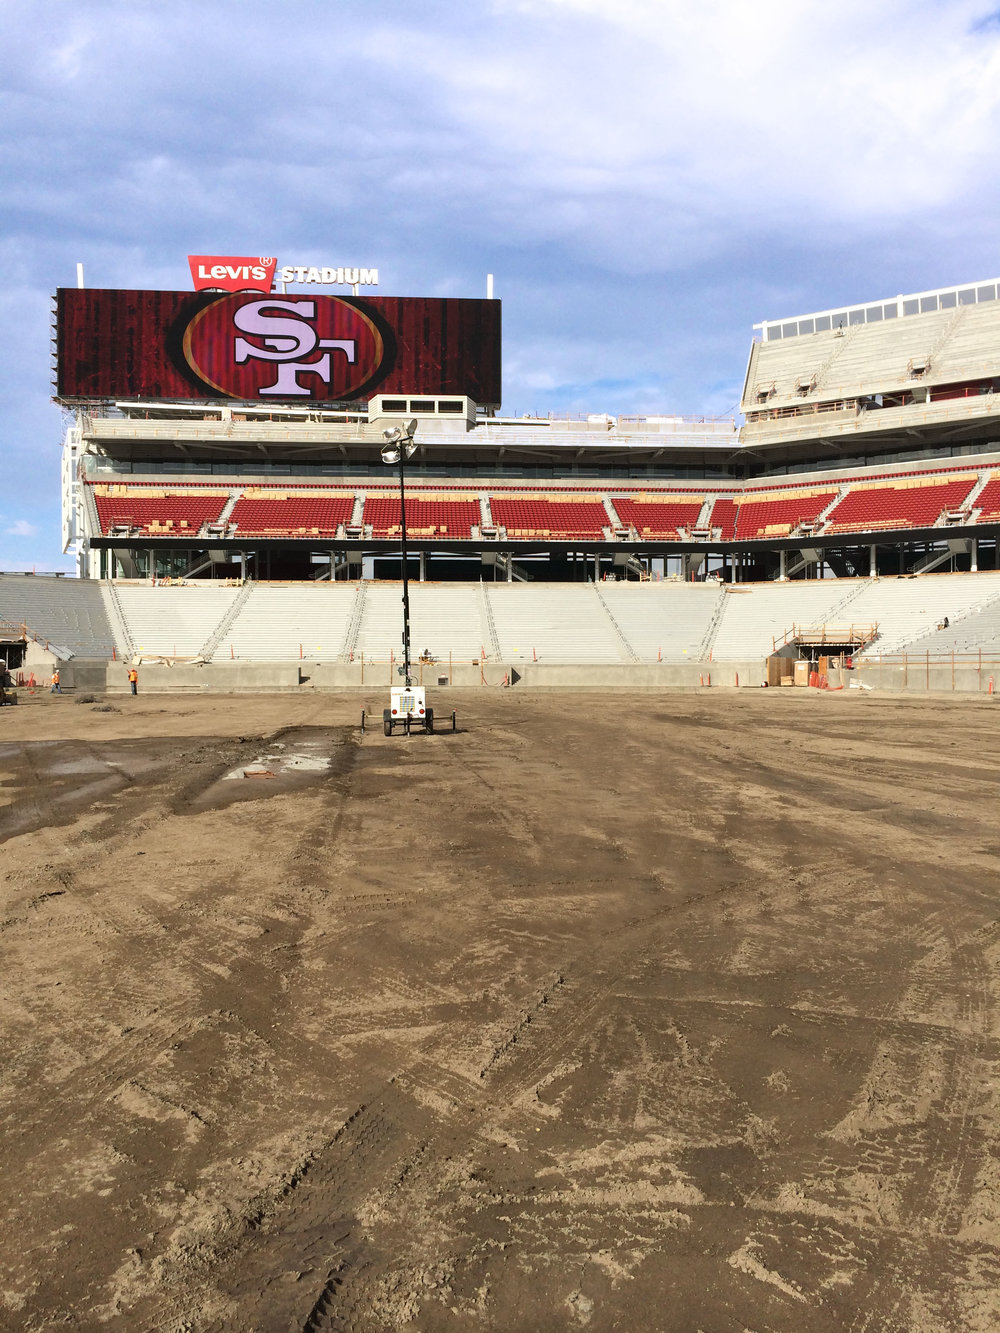 Levi's Stadium - Santa Clara, California: TSX-8500 and ECOMAX™ Wall Solution